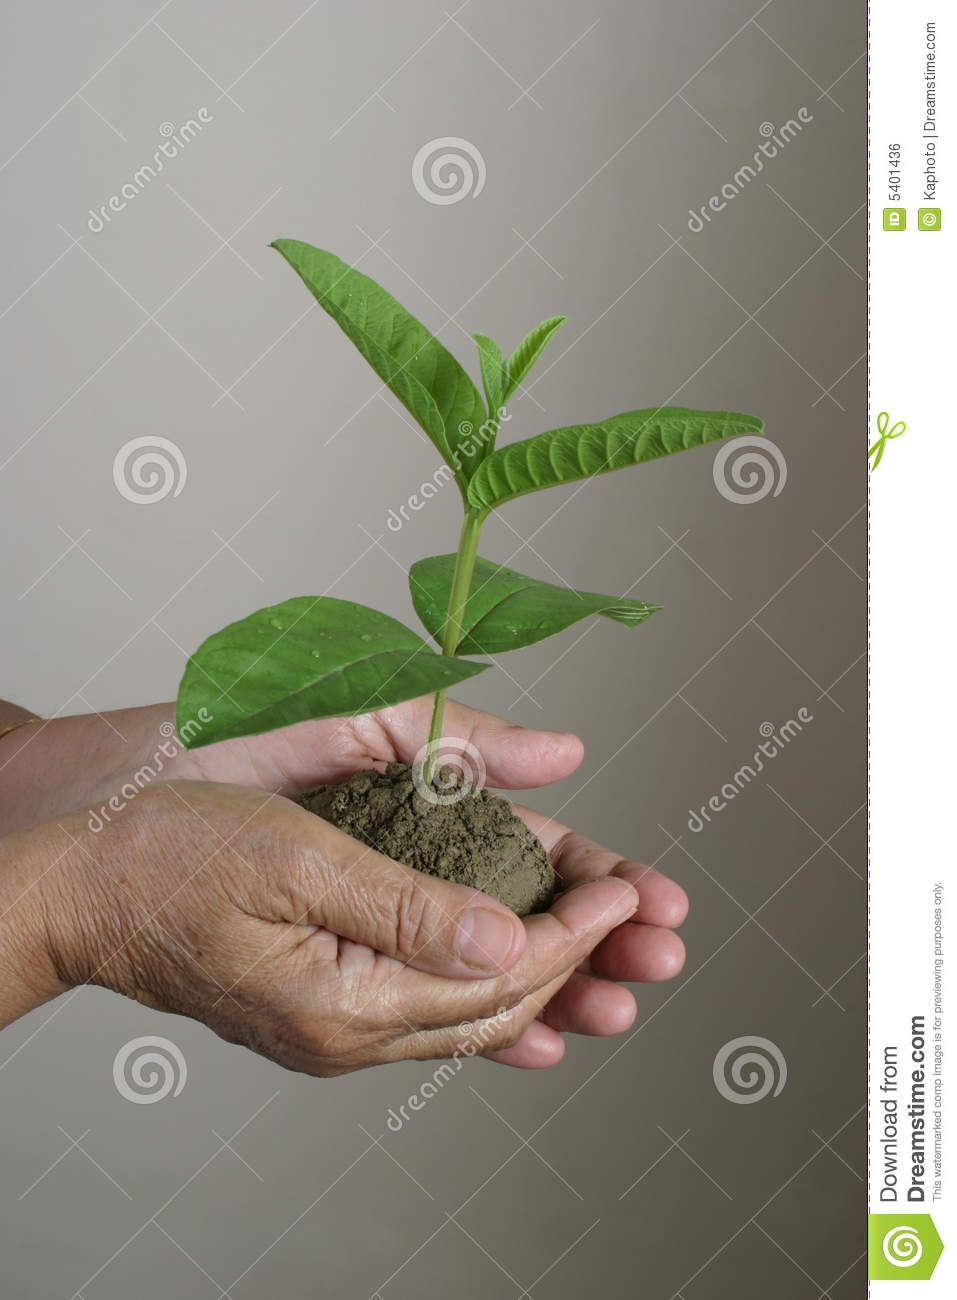 Save Environment Theme Stock Photo. Image Of Increase